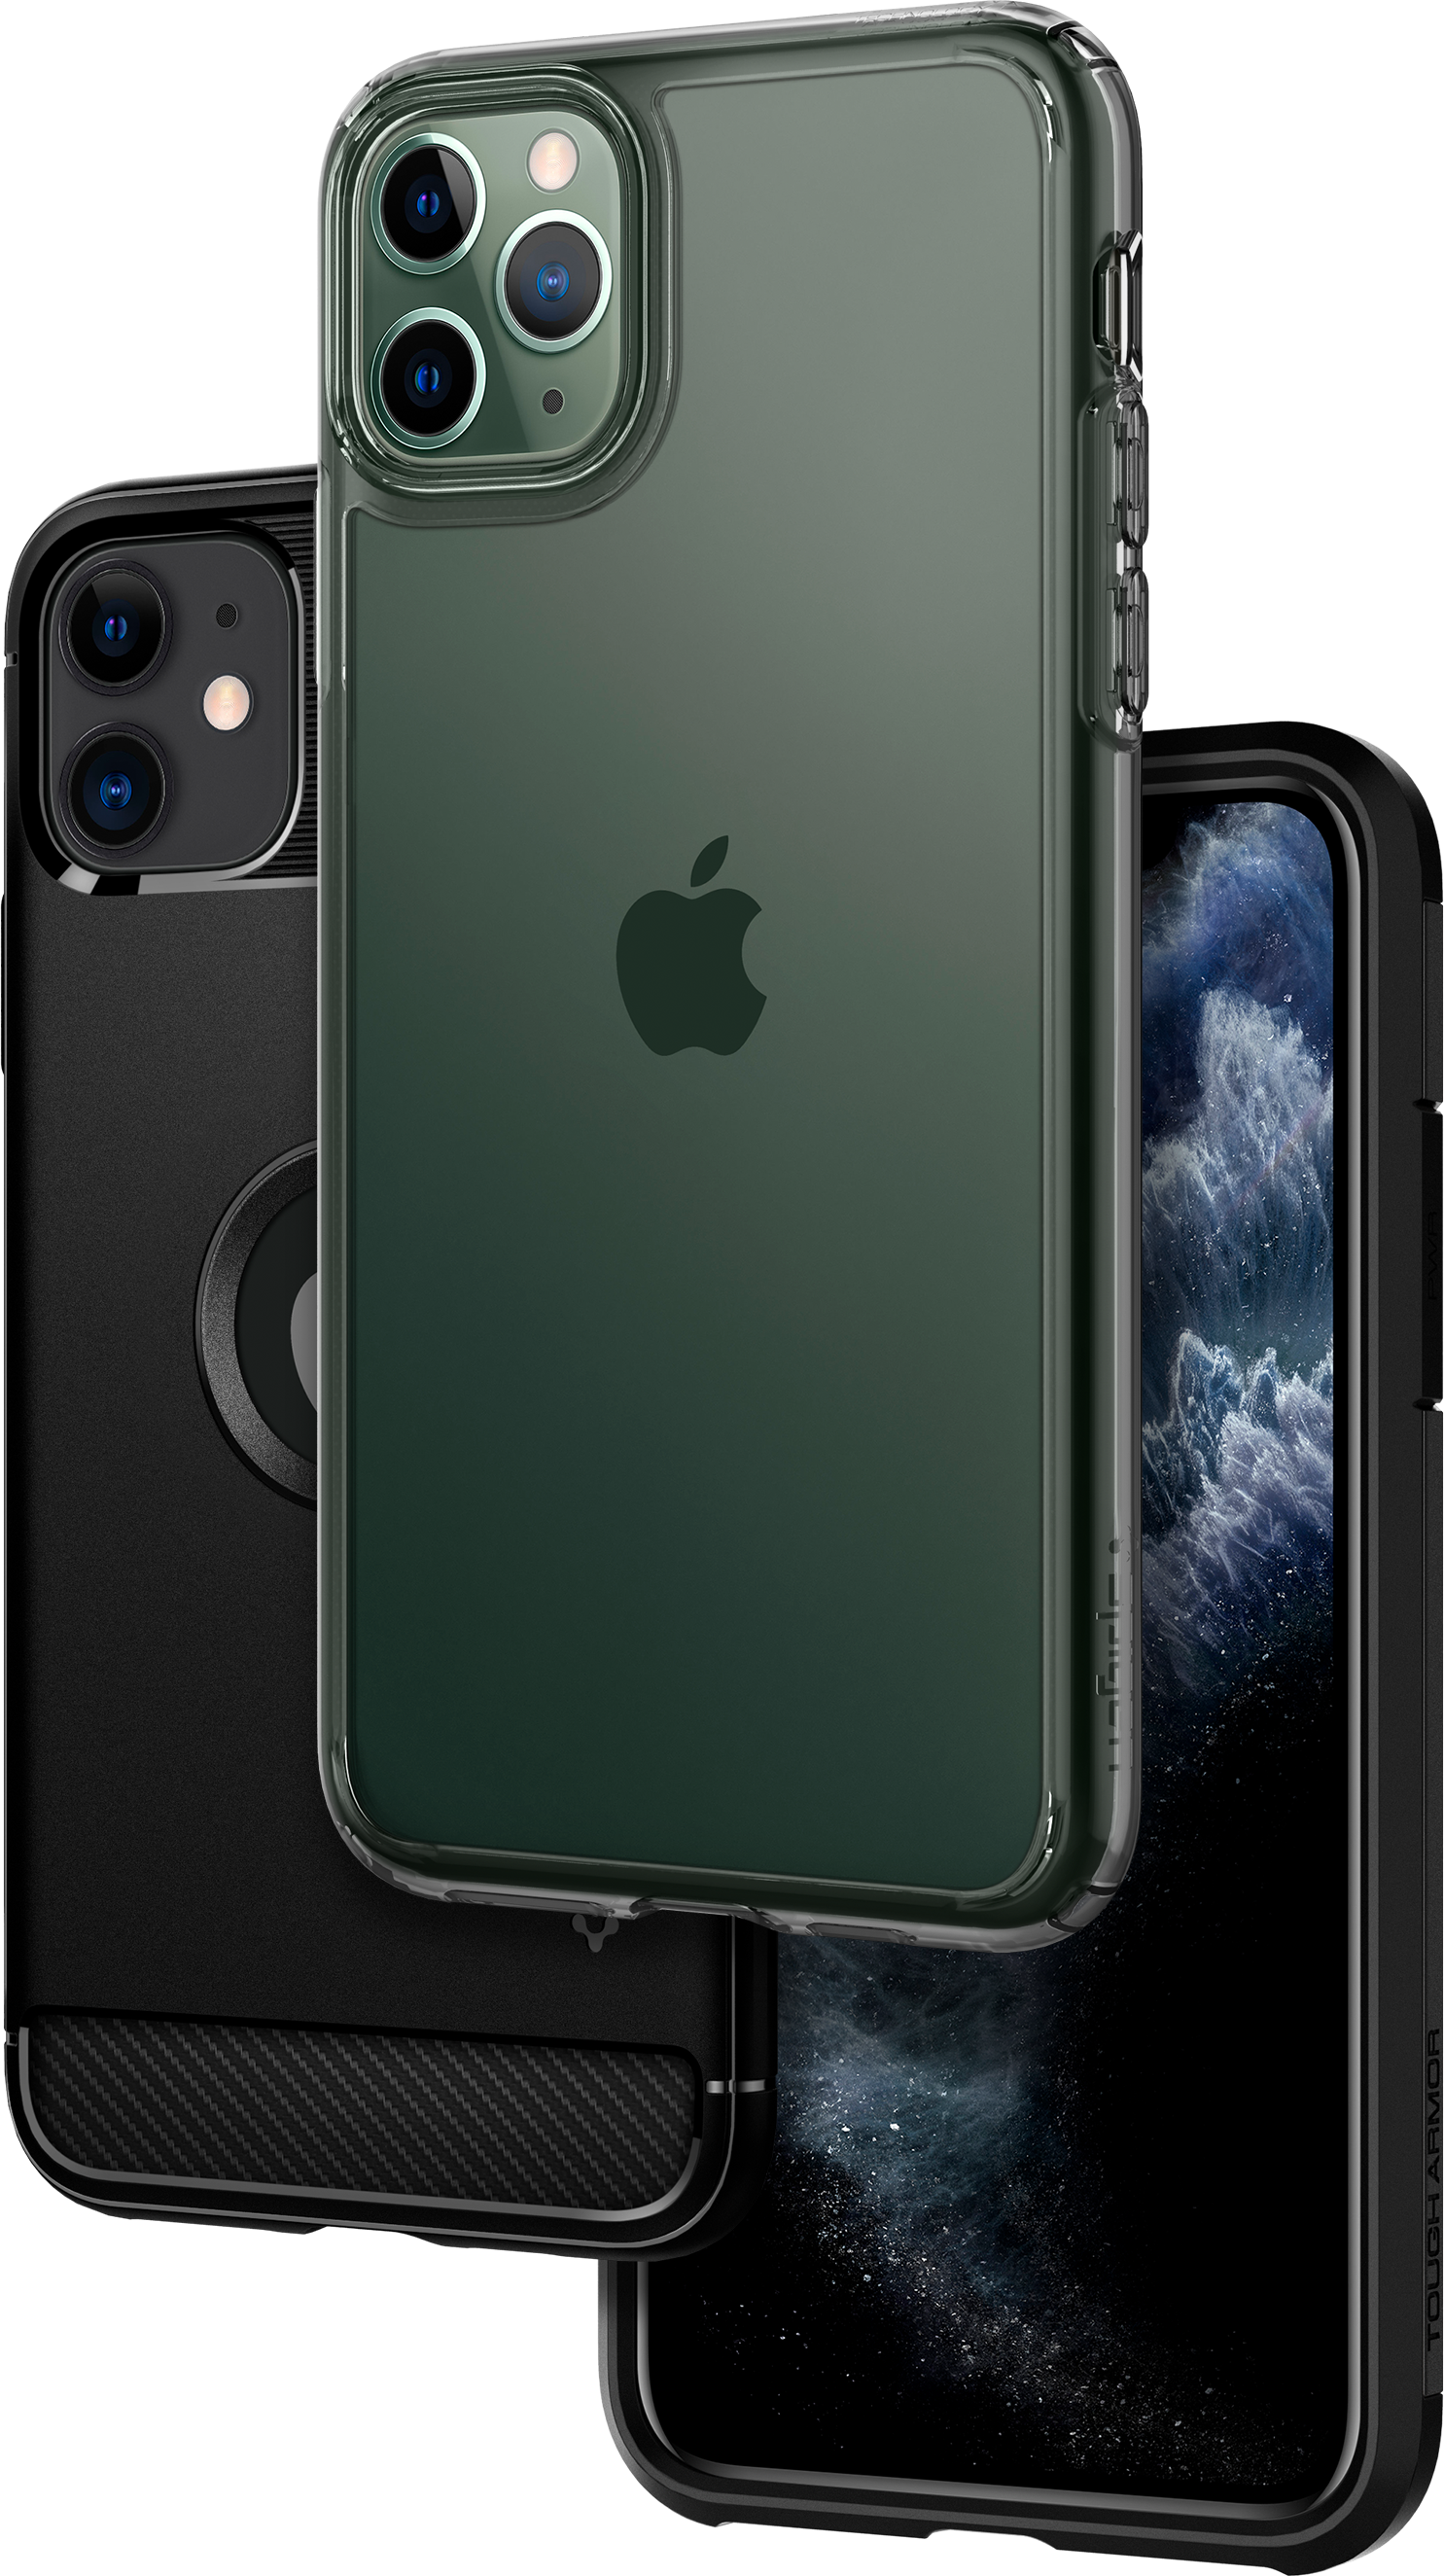 iPhone 11 Main Banner Device Image